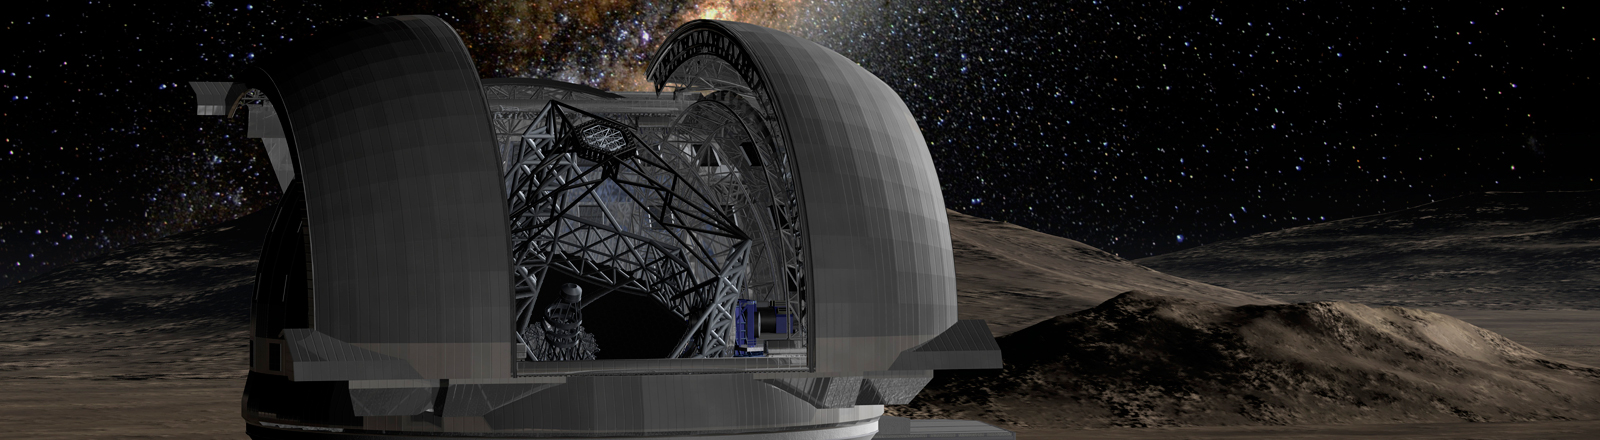 Modell des European Extremly Large Telescope